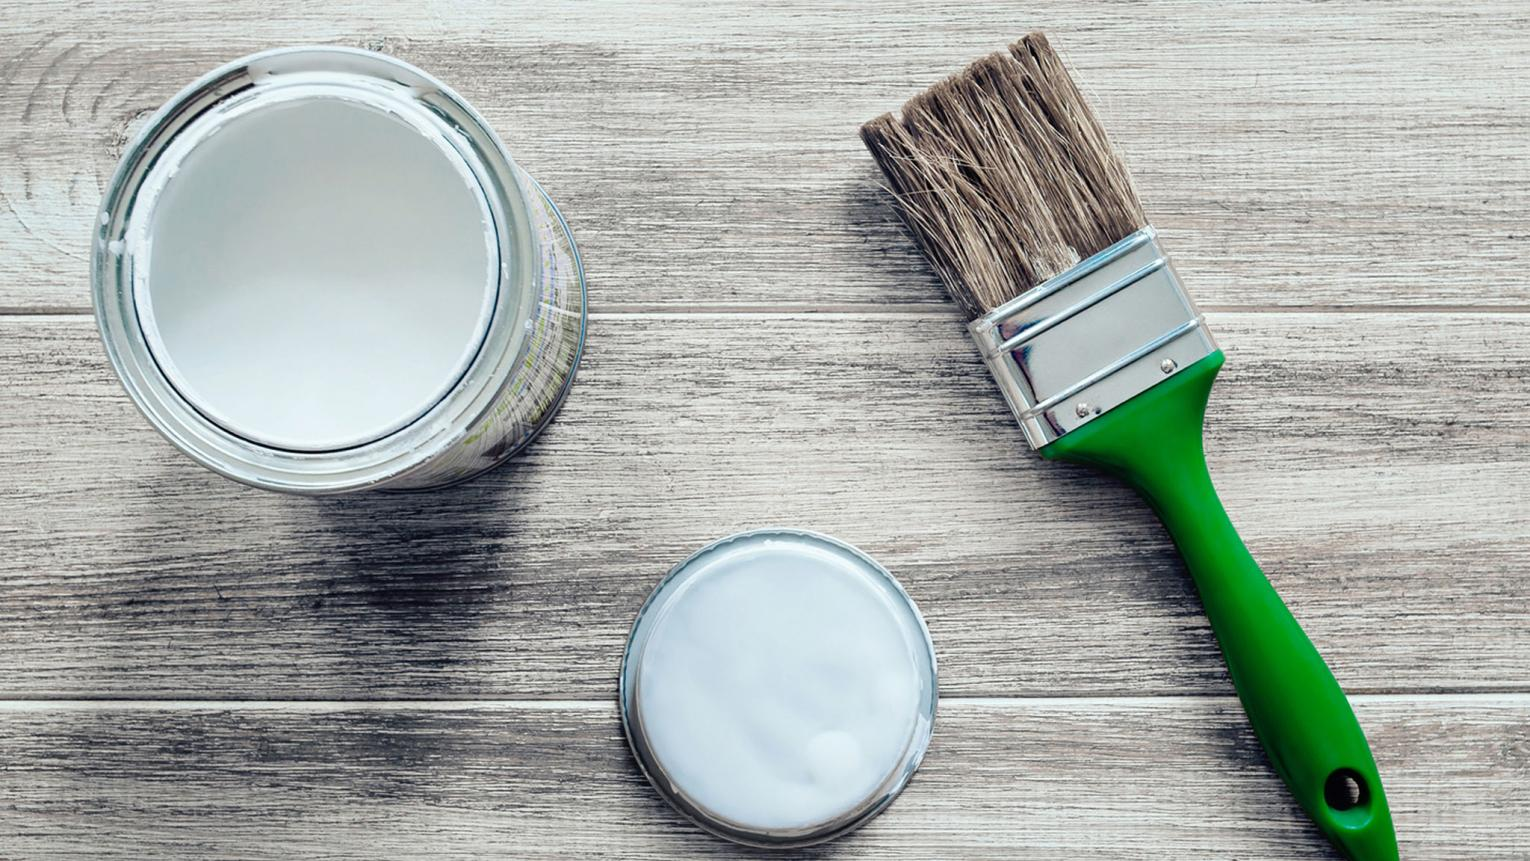 Preparing to paint? A good quality paintbrush is your secret weapon to a flawless finish. Learn how to pick the best brush for the job.